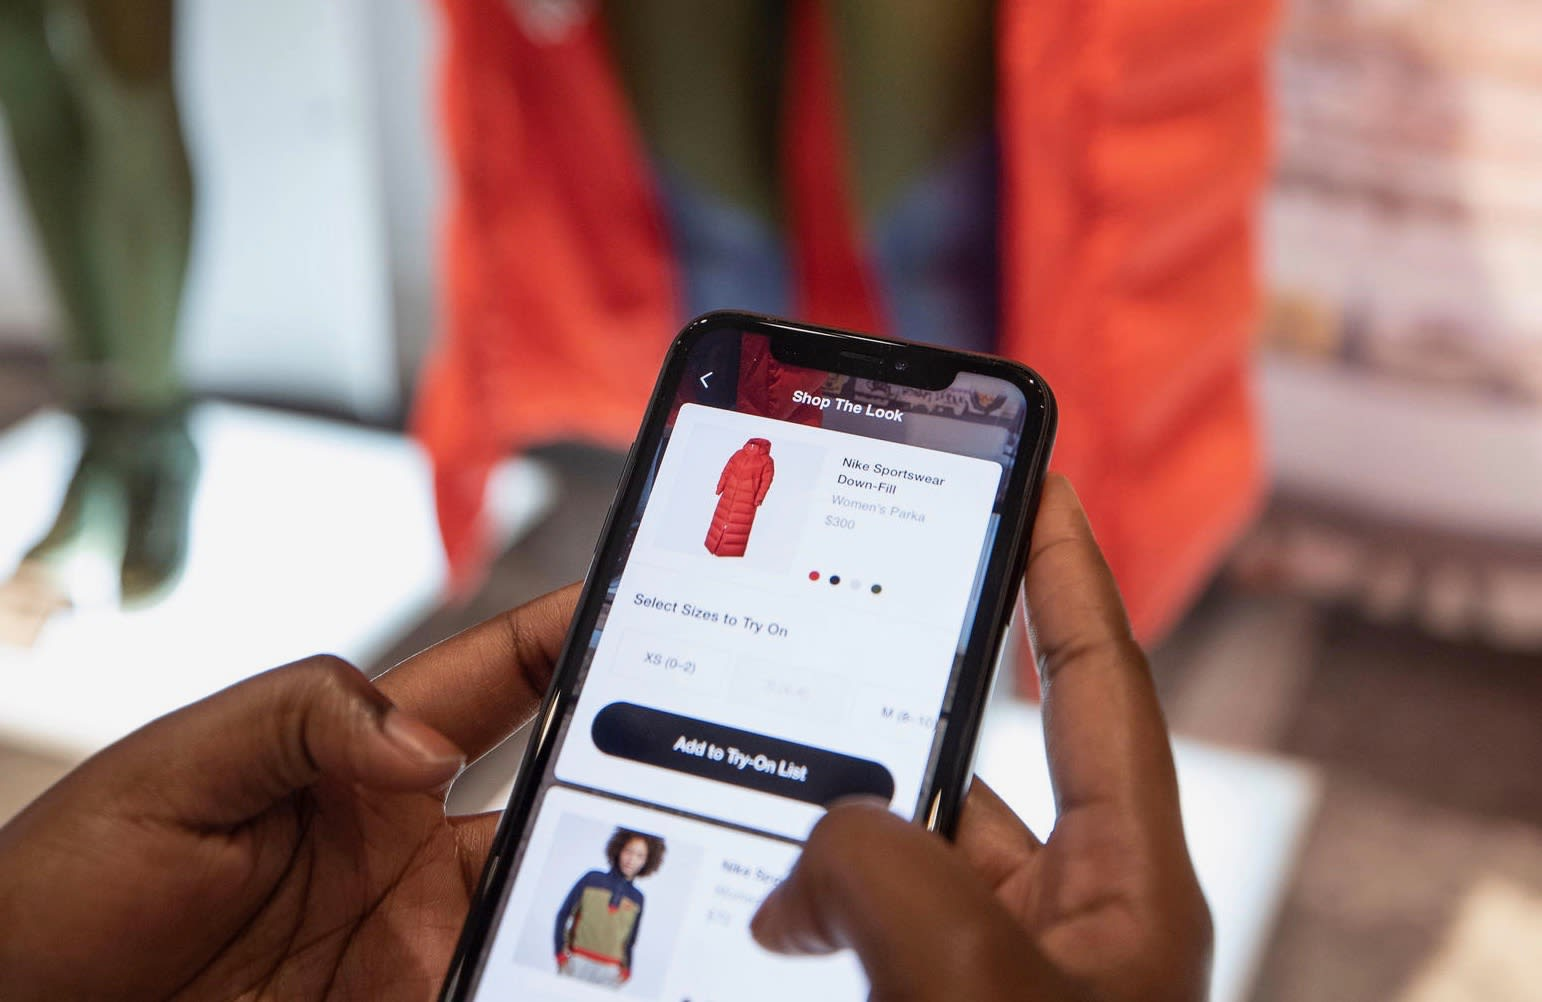 ab00bb4dd Nike's new NYC flagship store is fueled by its mobile app